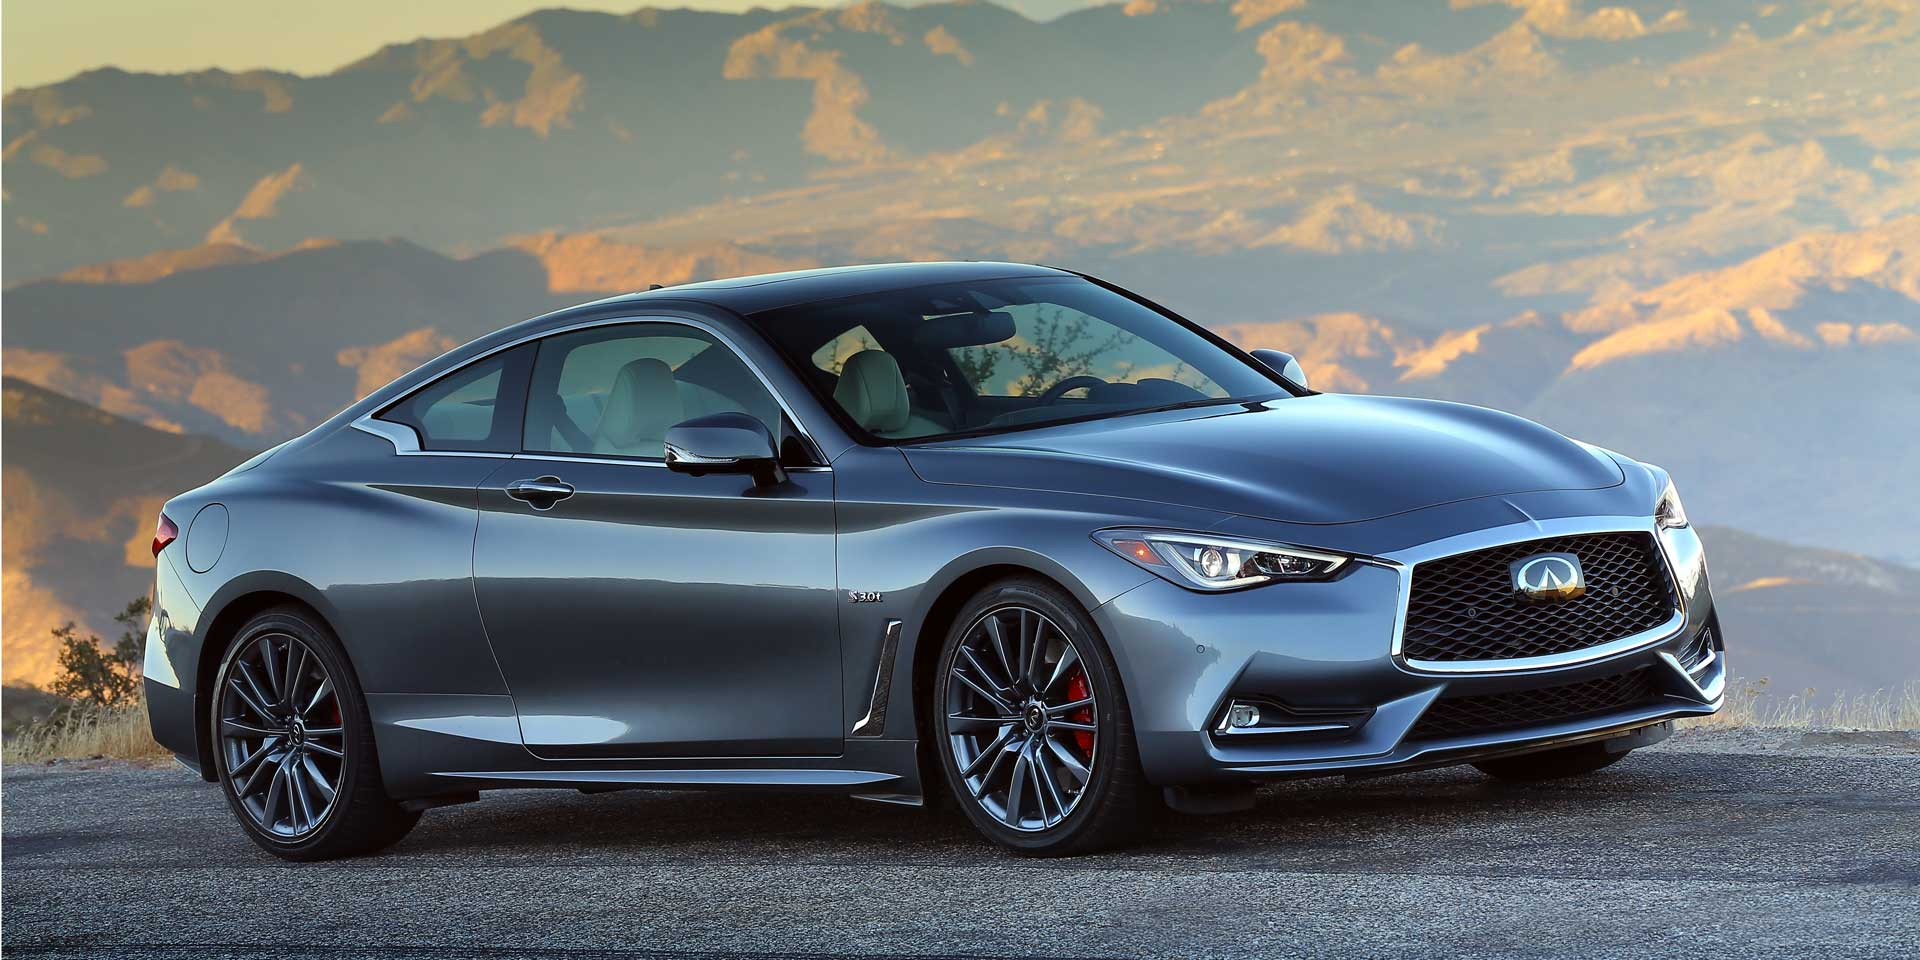 2017 Infiniti Q60 The Is A Two Door Sports Coupe That Seats Four Pengers This All New Will Compete Against Vehicles Like